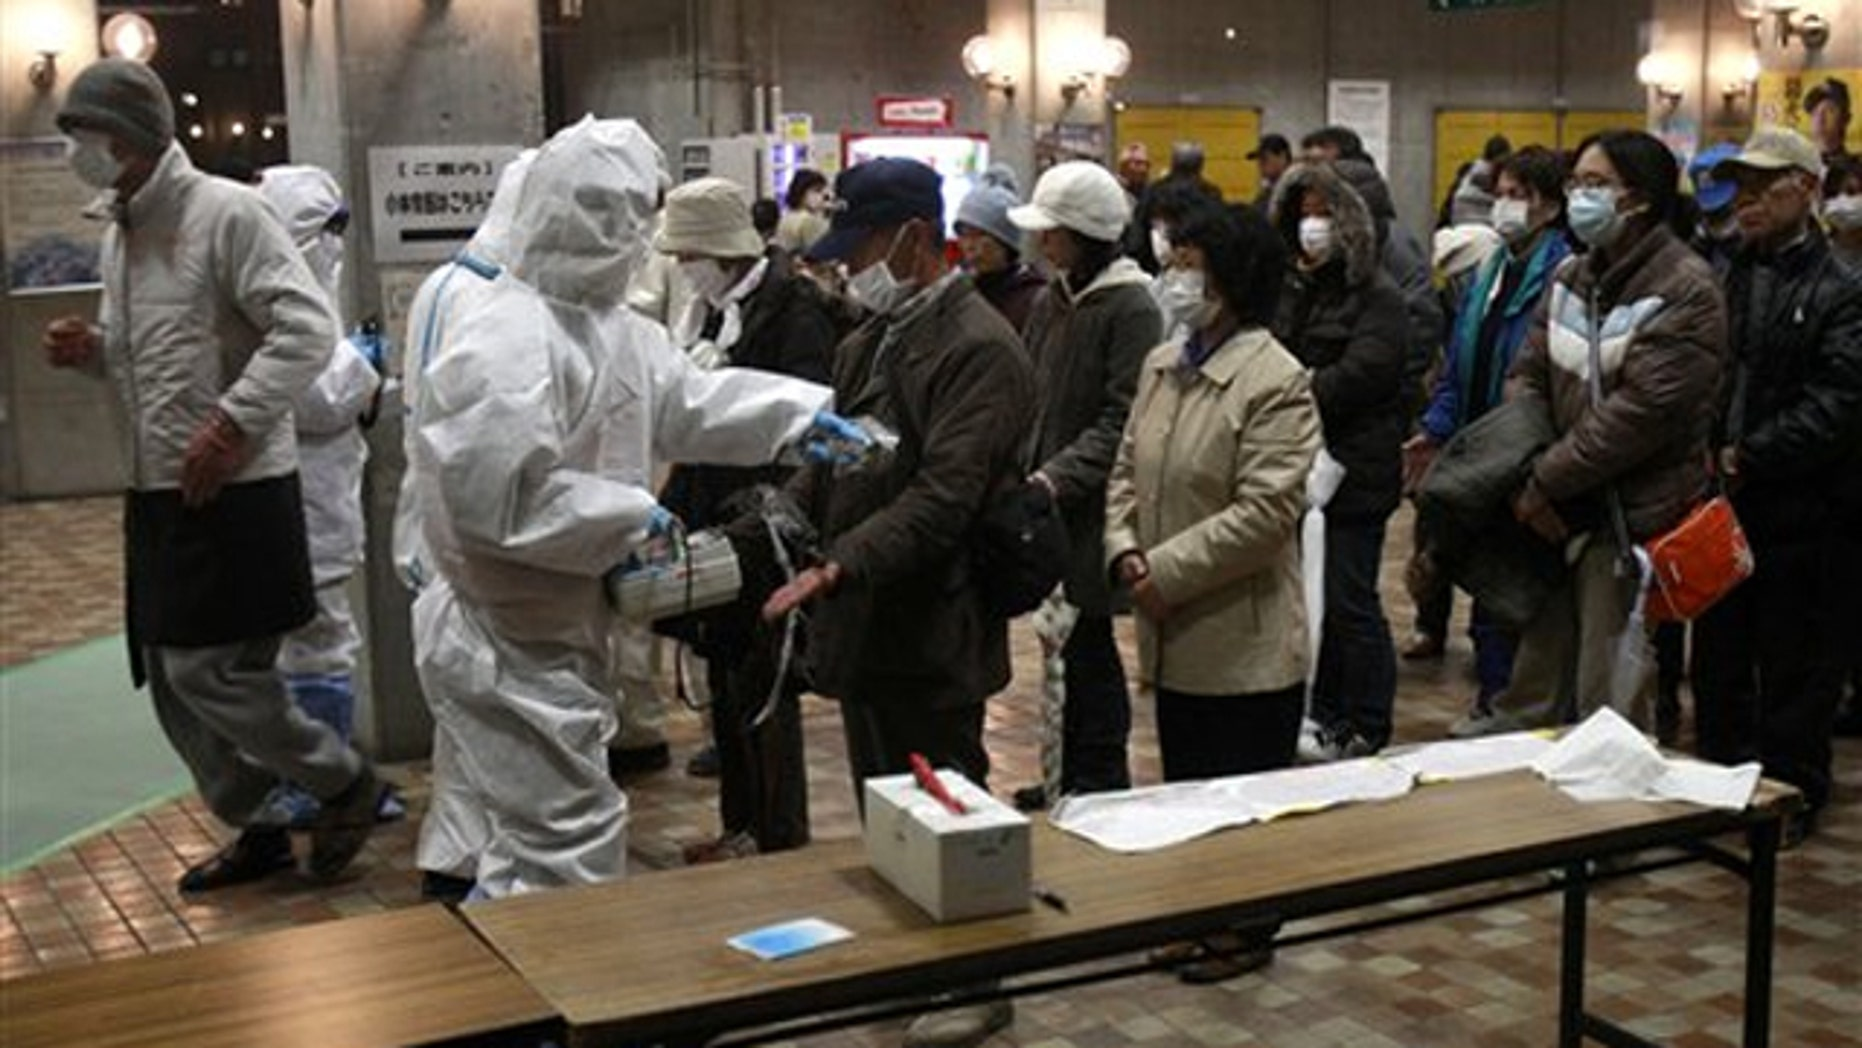 Evacuees are screened for radiation exposure at a testing center March 15 in Japan's Koriyama city.